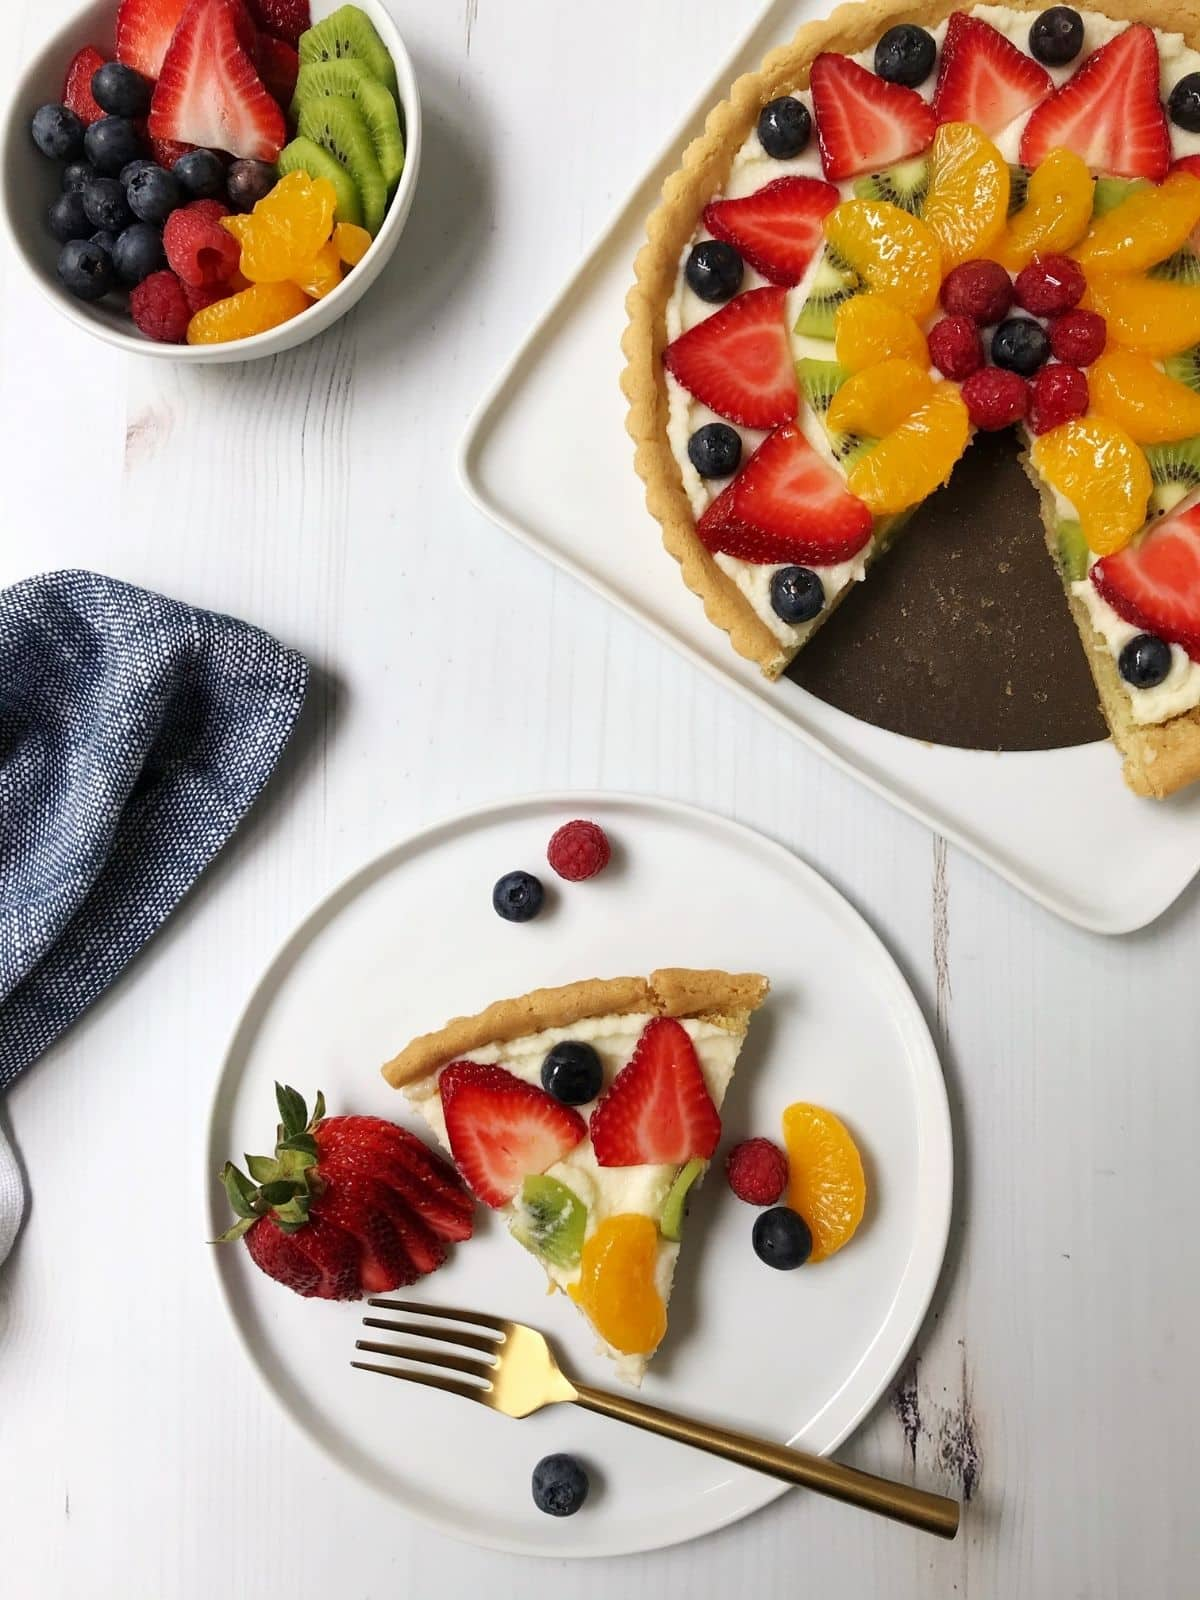 slice of fruit pizza on a plate with extra fruit in a bowl for garnish